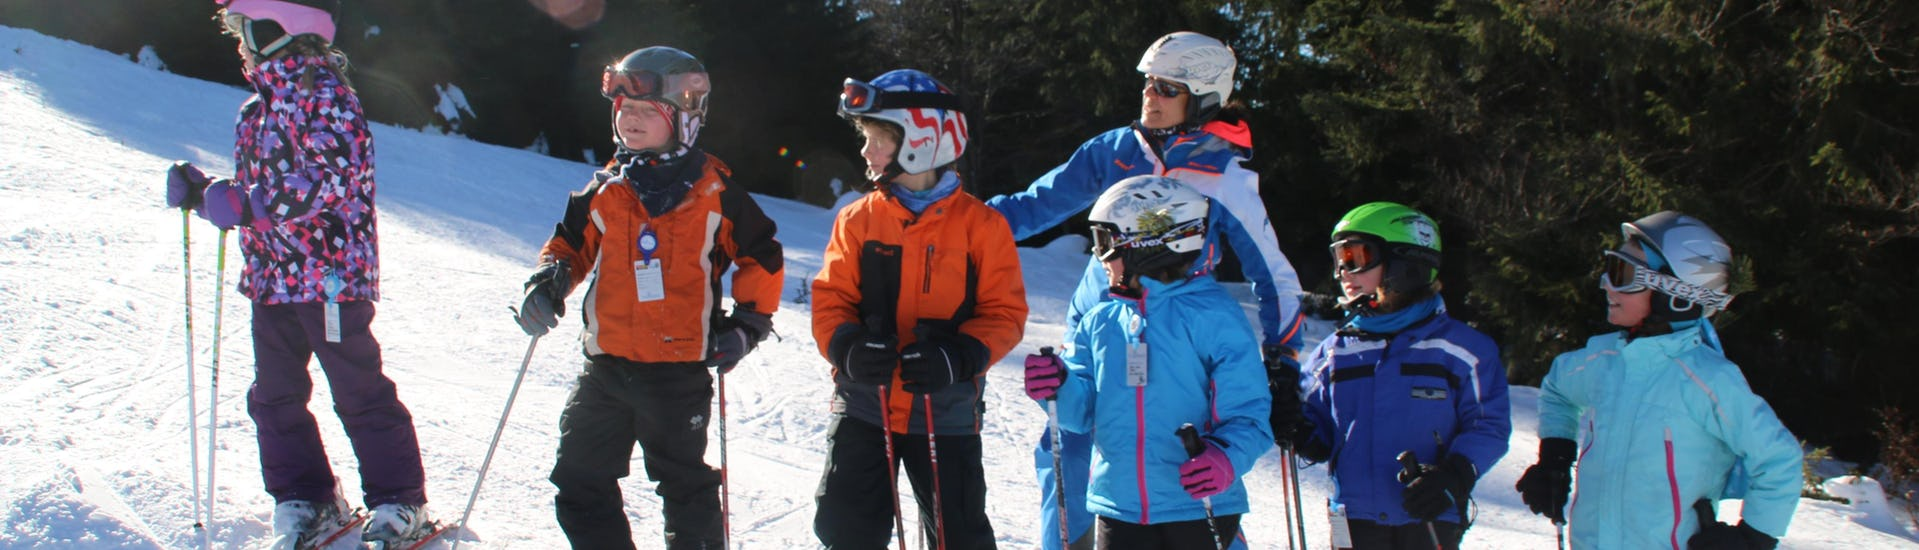 Ski Lessons for Kids (3-12 Years) - All in One